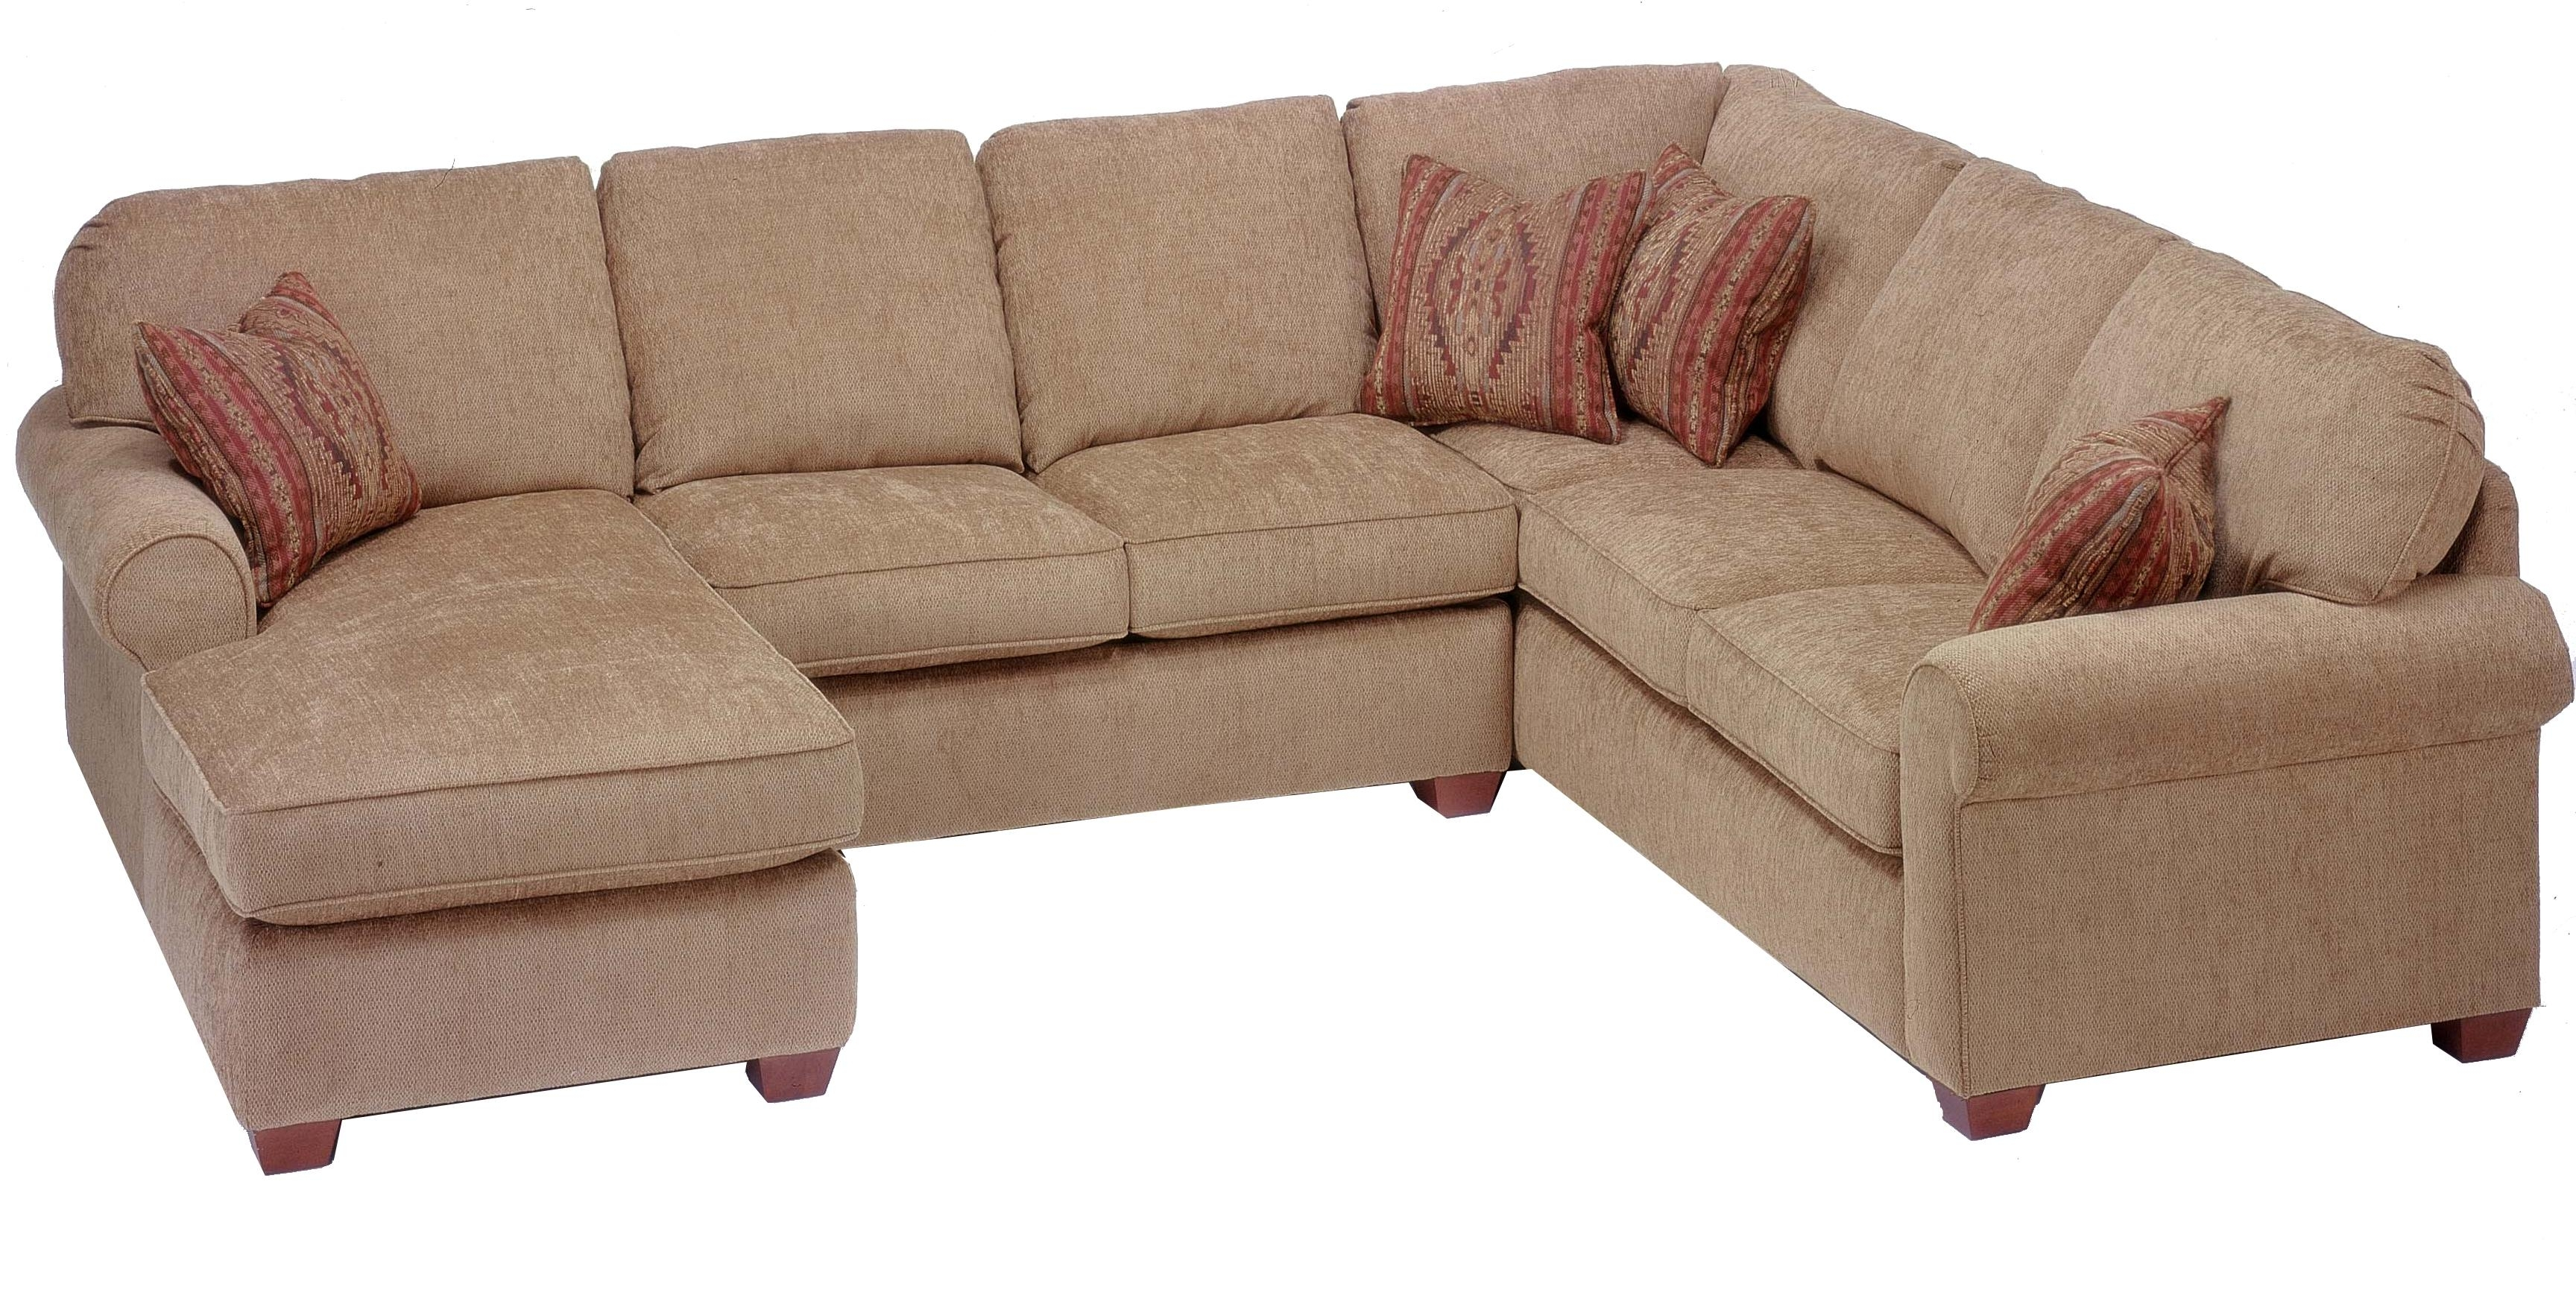 Flexsteel Thornton 3 Piece Sectional With Chaise - Ahfa - Sofa intended for Norfolk Chocolate 3 Piece Sectionals With Raf Chaise (Image 13 of 30)